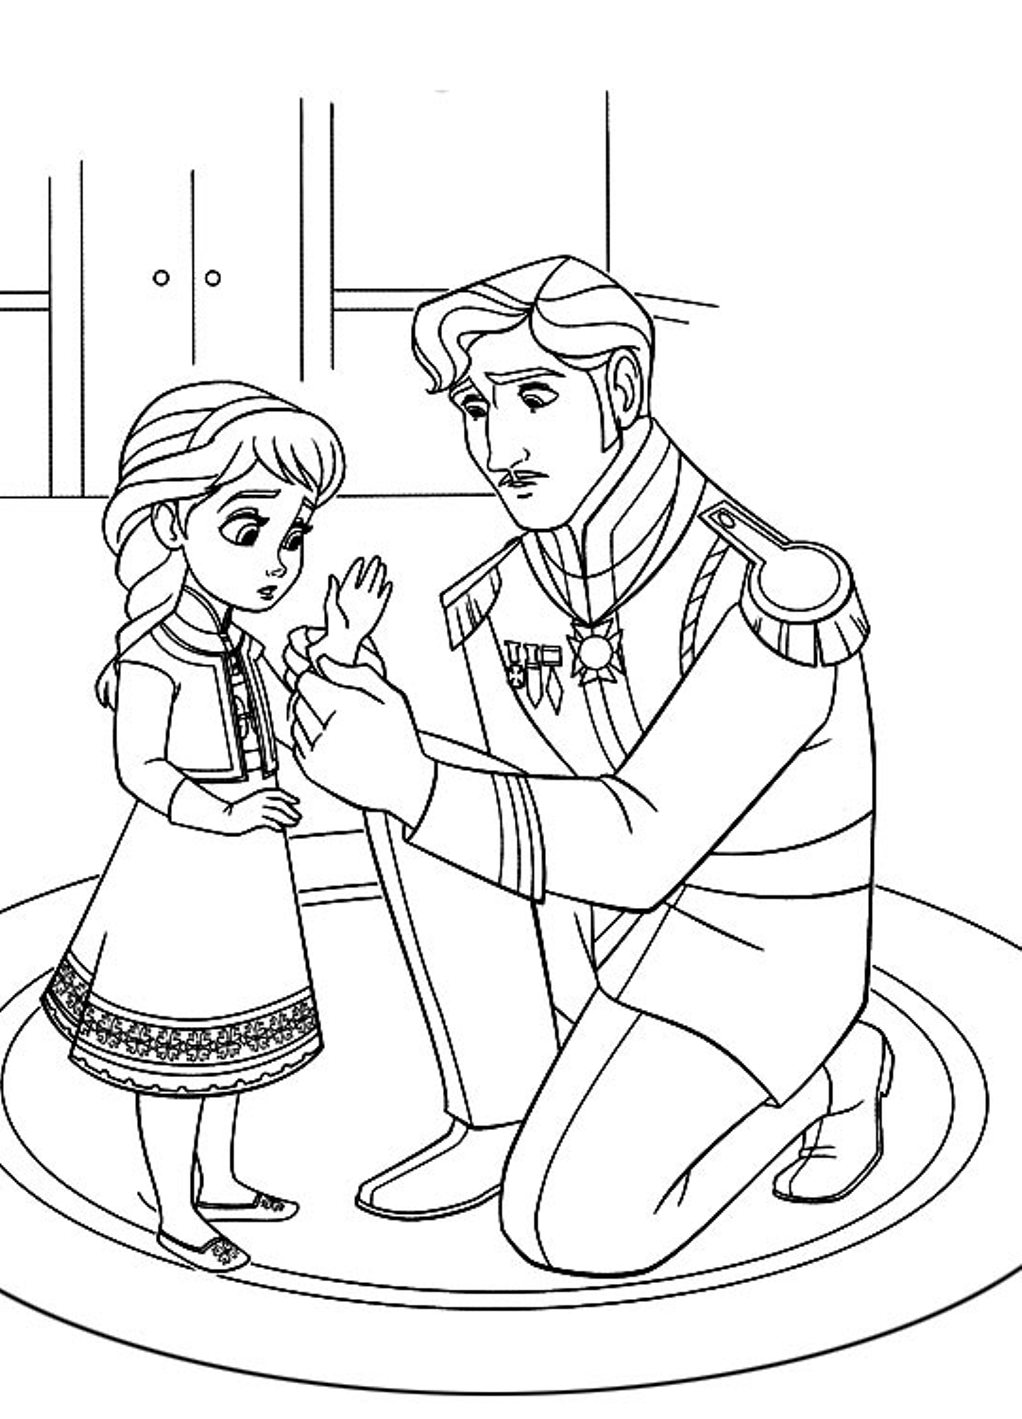 Frozen coloring page only coloring pages for Frozen coloring pages free